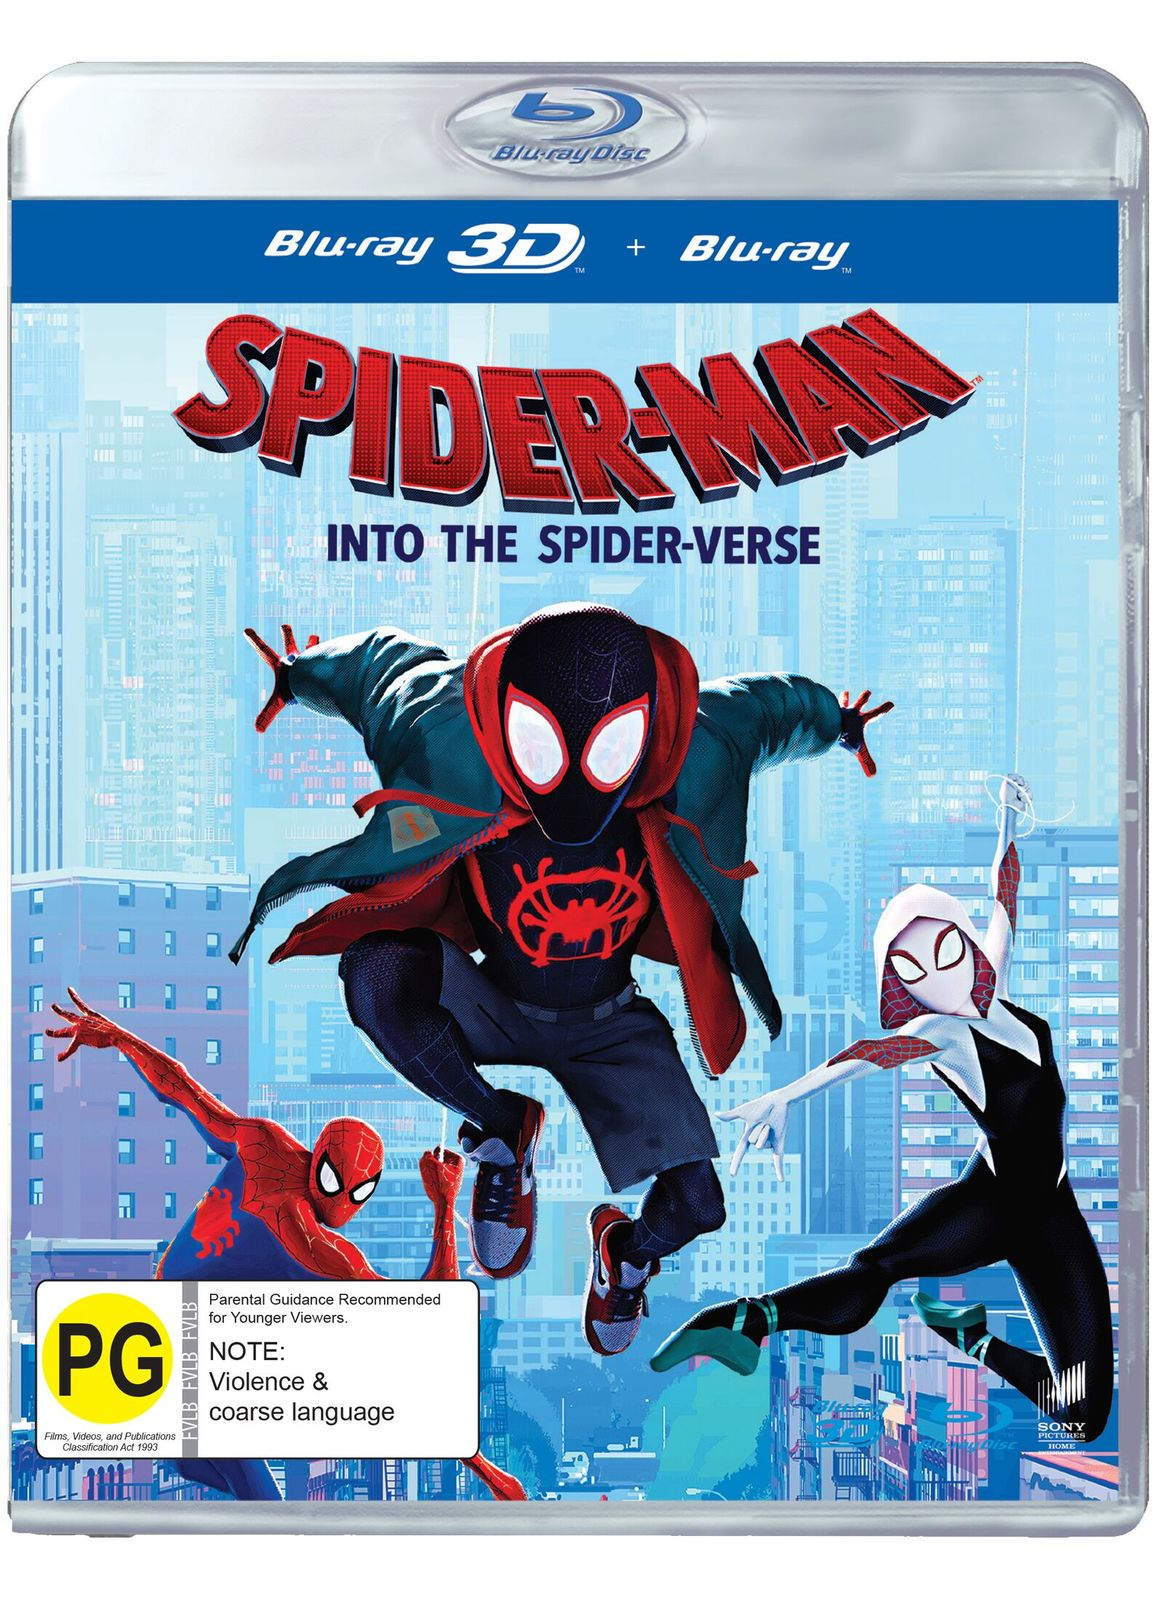 Spider-Man: Into the Spider-Verse on Blu-ray, 3D Blu-ray image